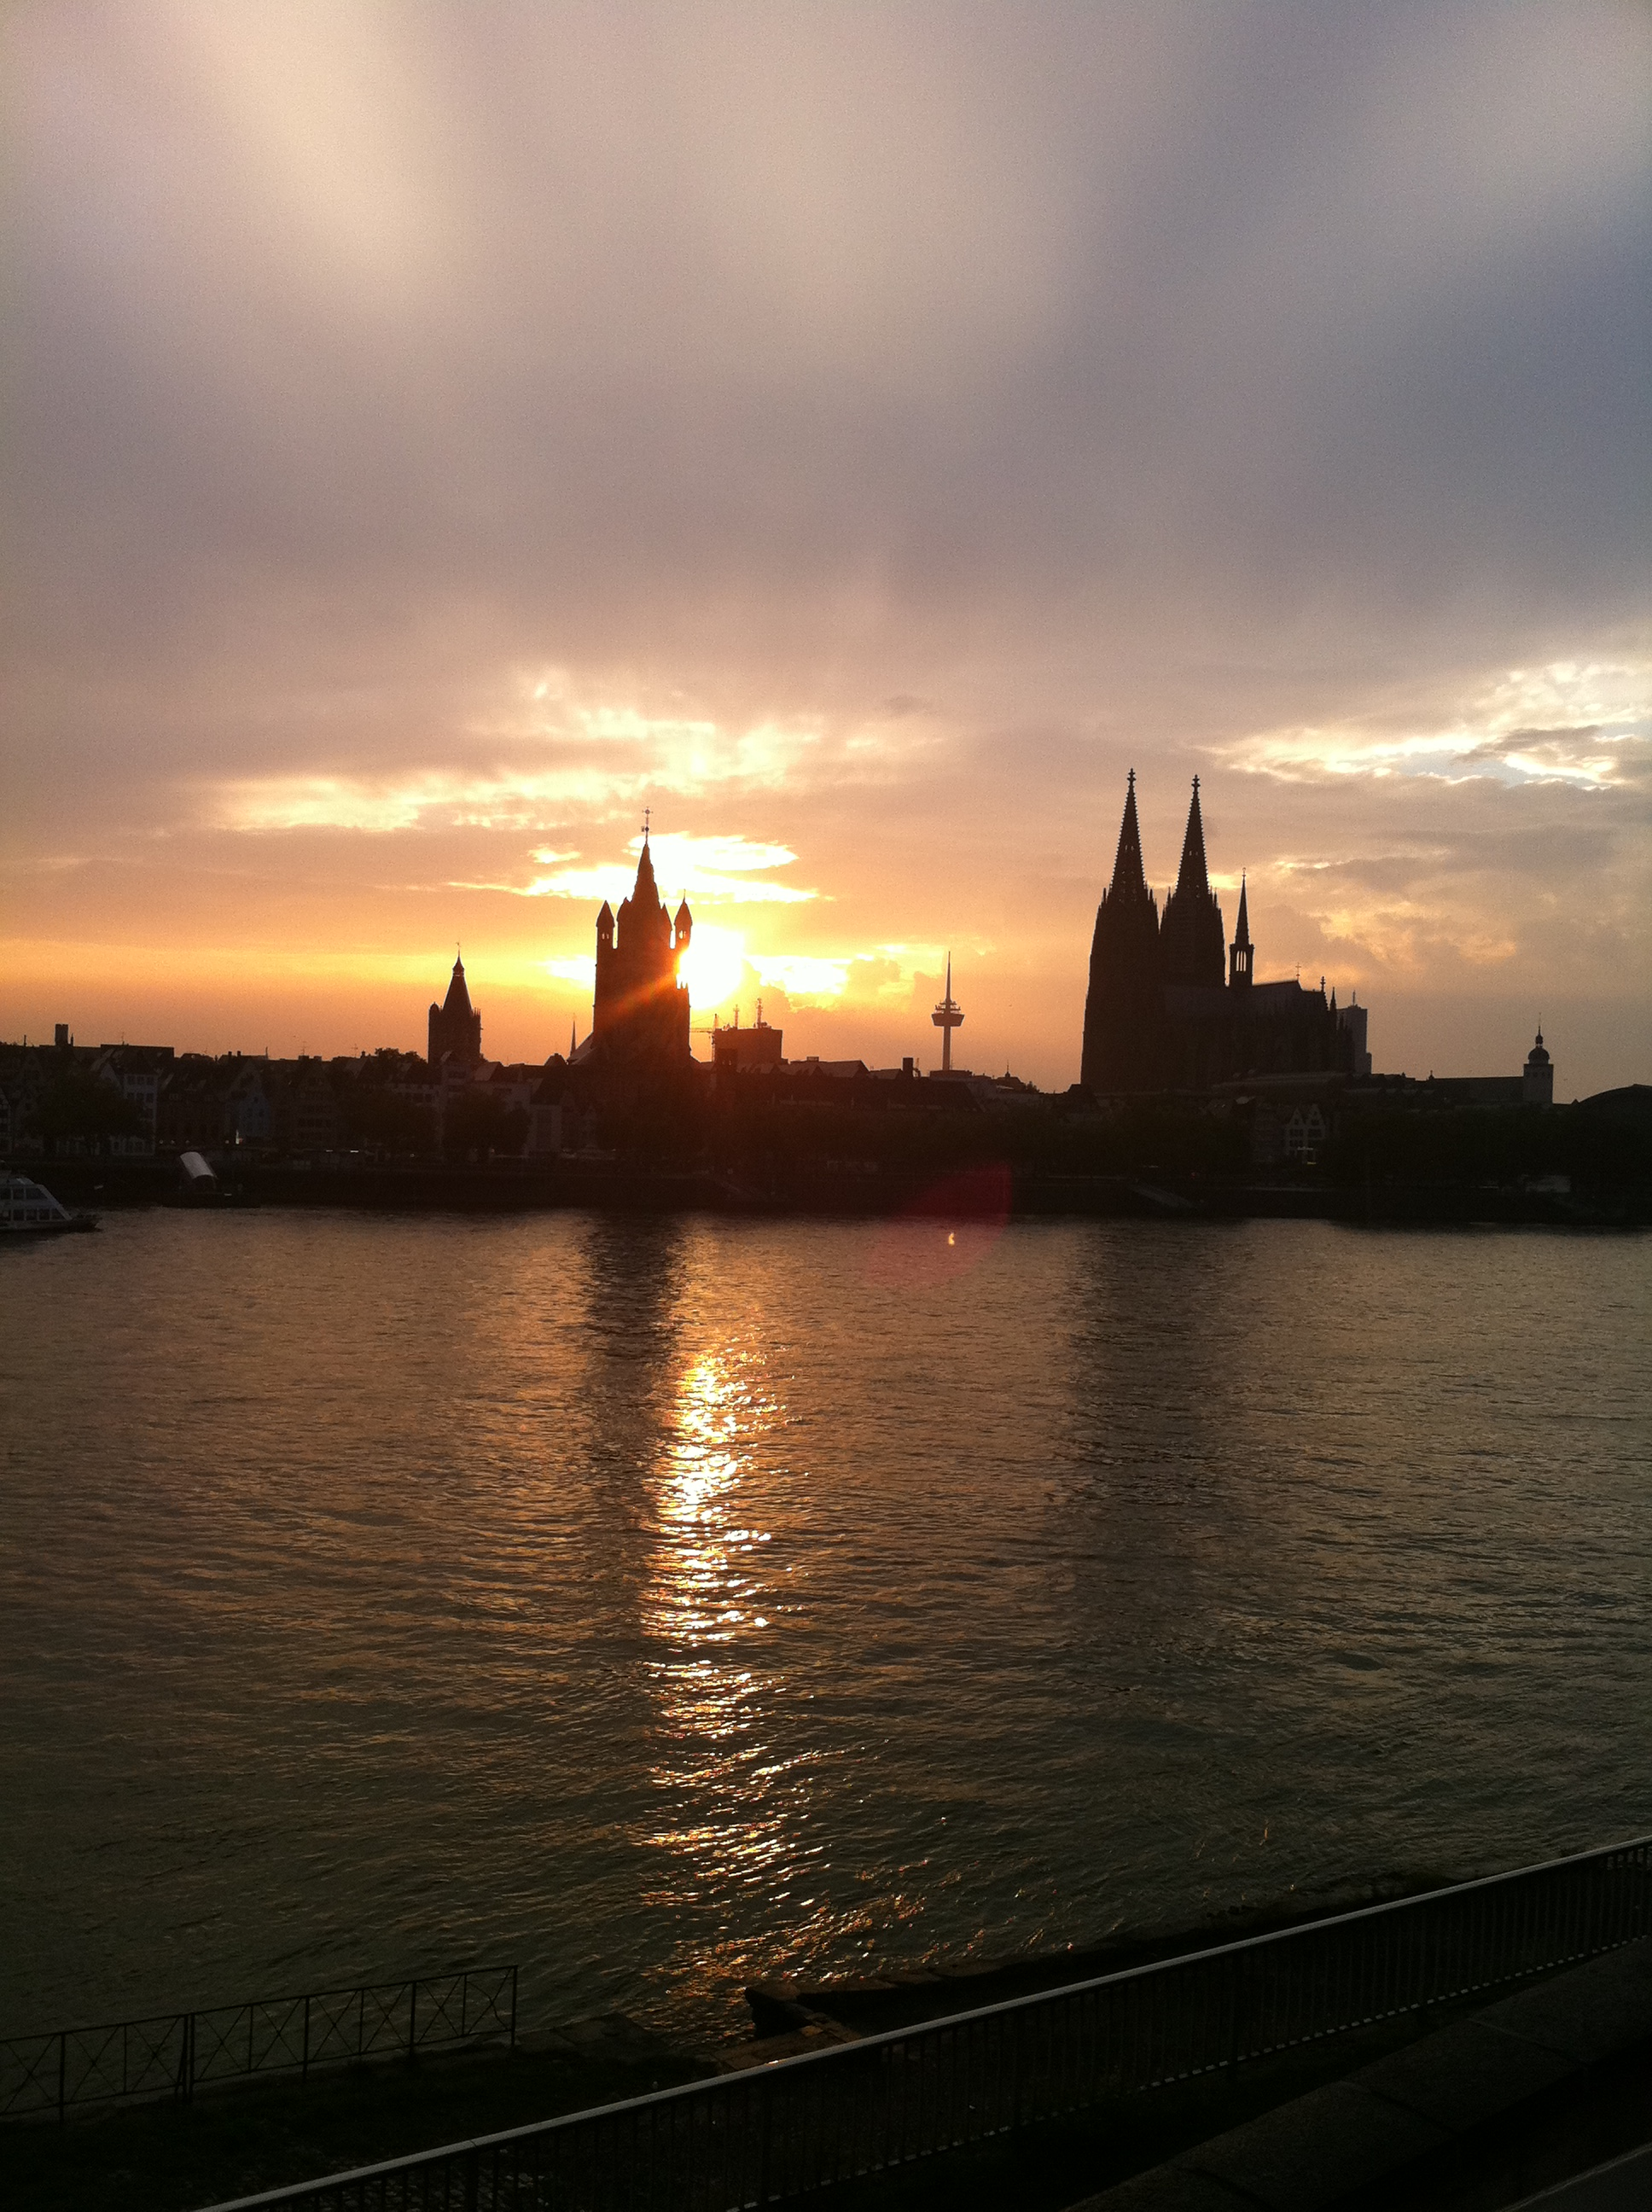 Sunset in Cologne